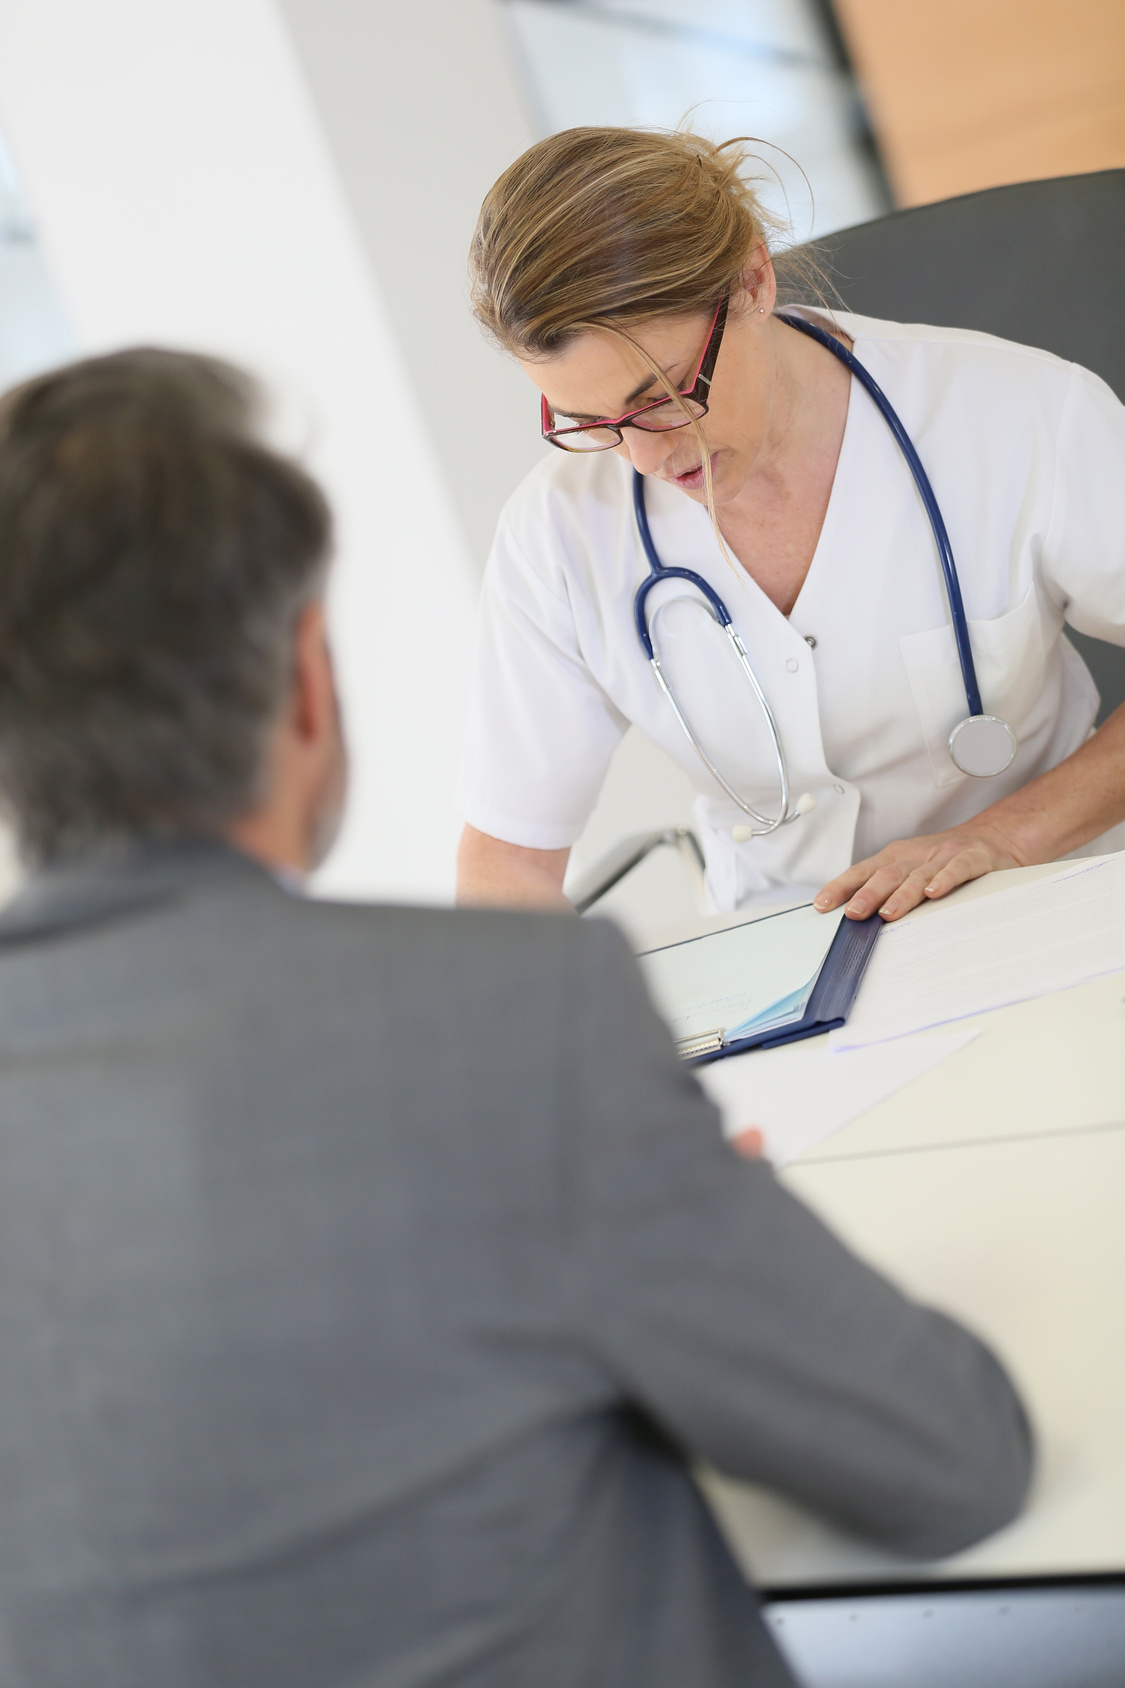 Doctor meeting with patient in hospital office